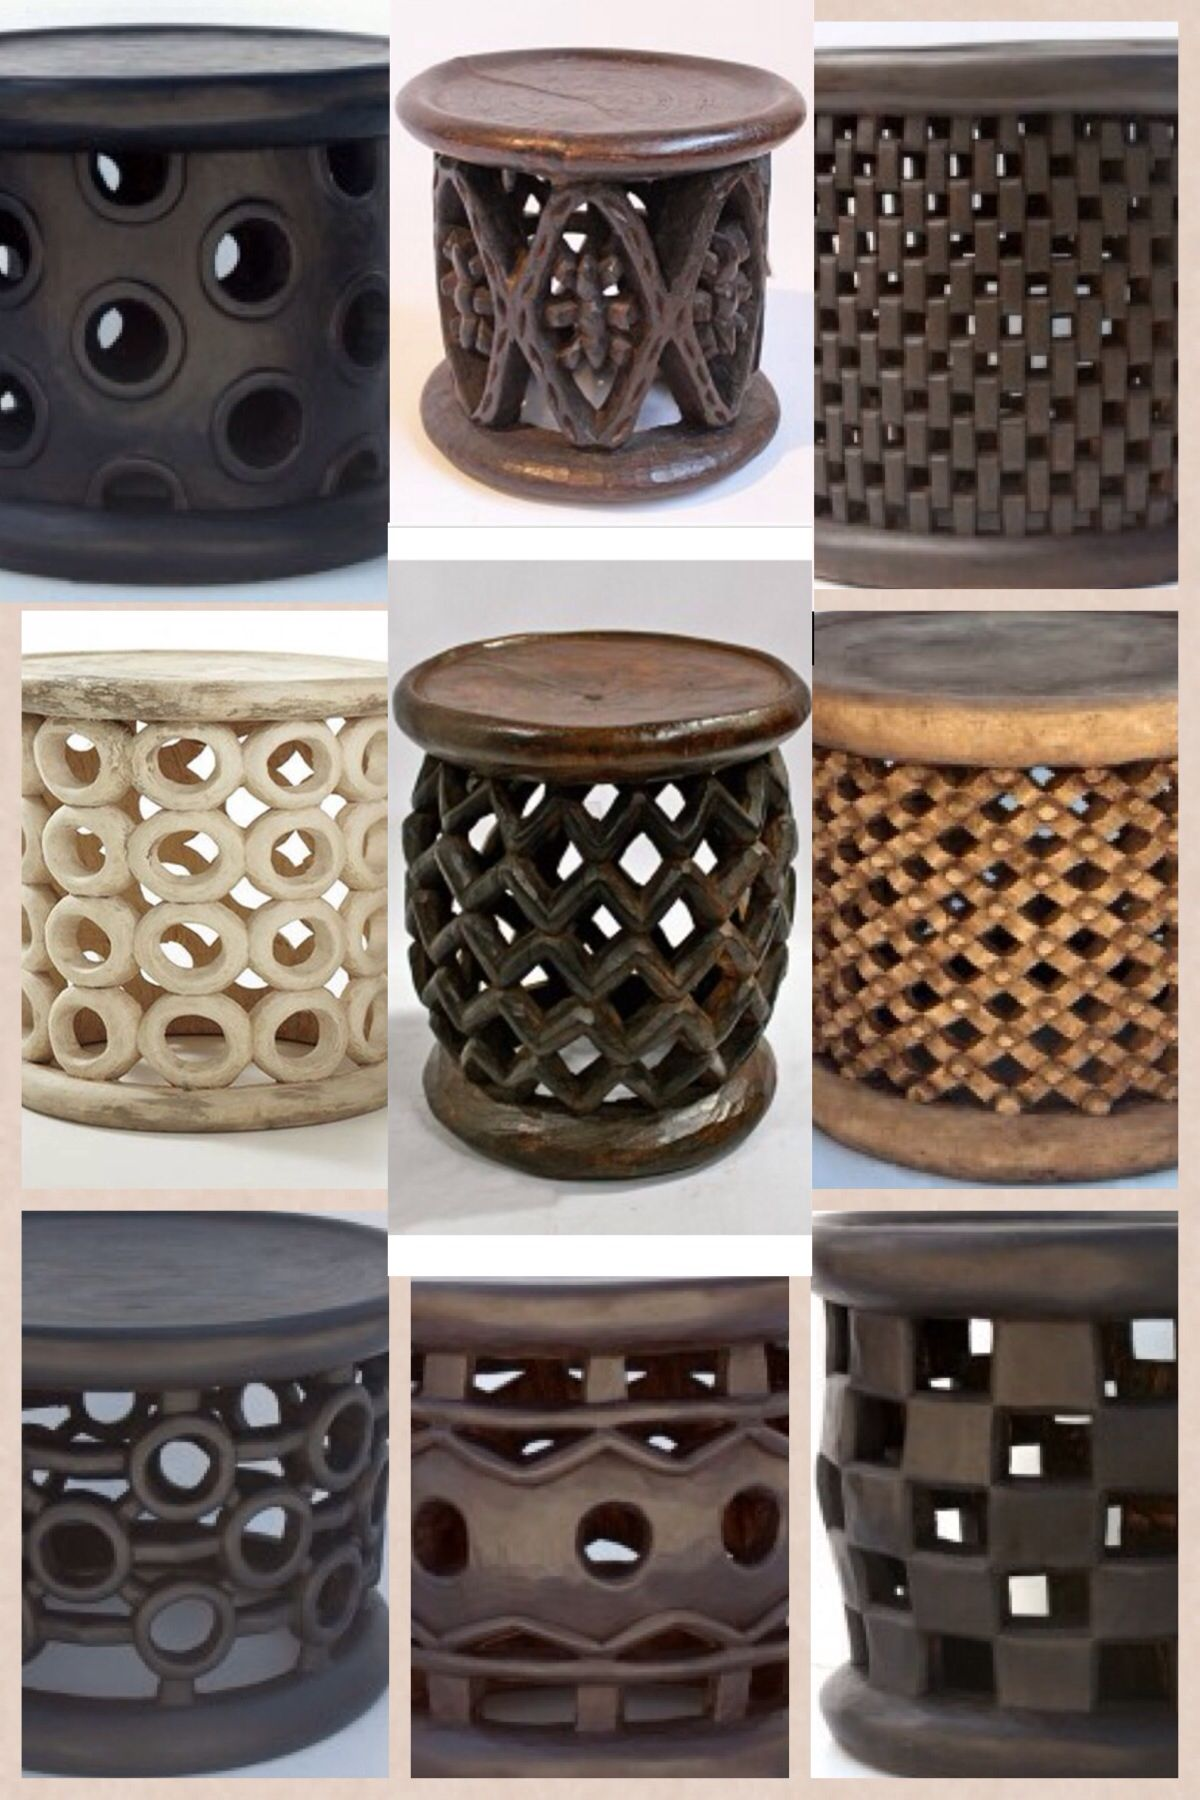 Bamileke stools is the king s seat in the Bamileke tribes of Cameroon